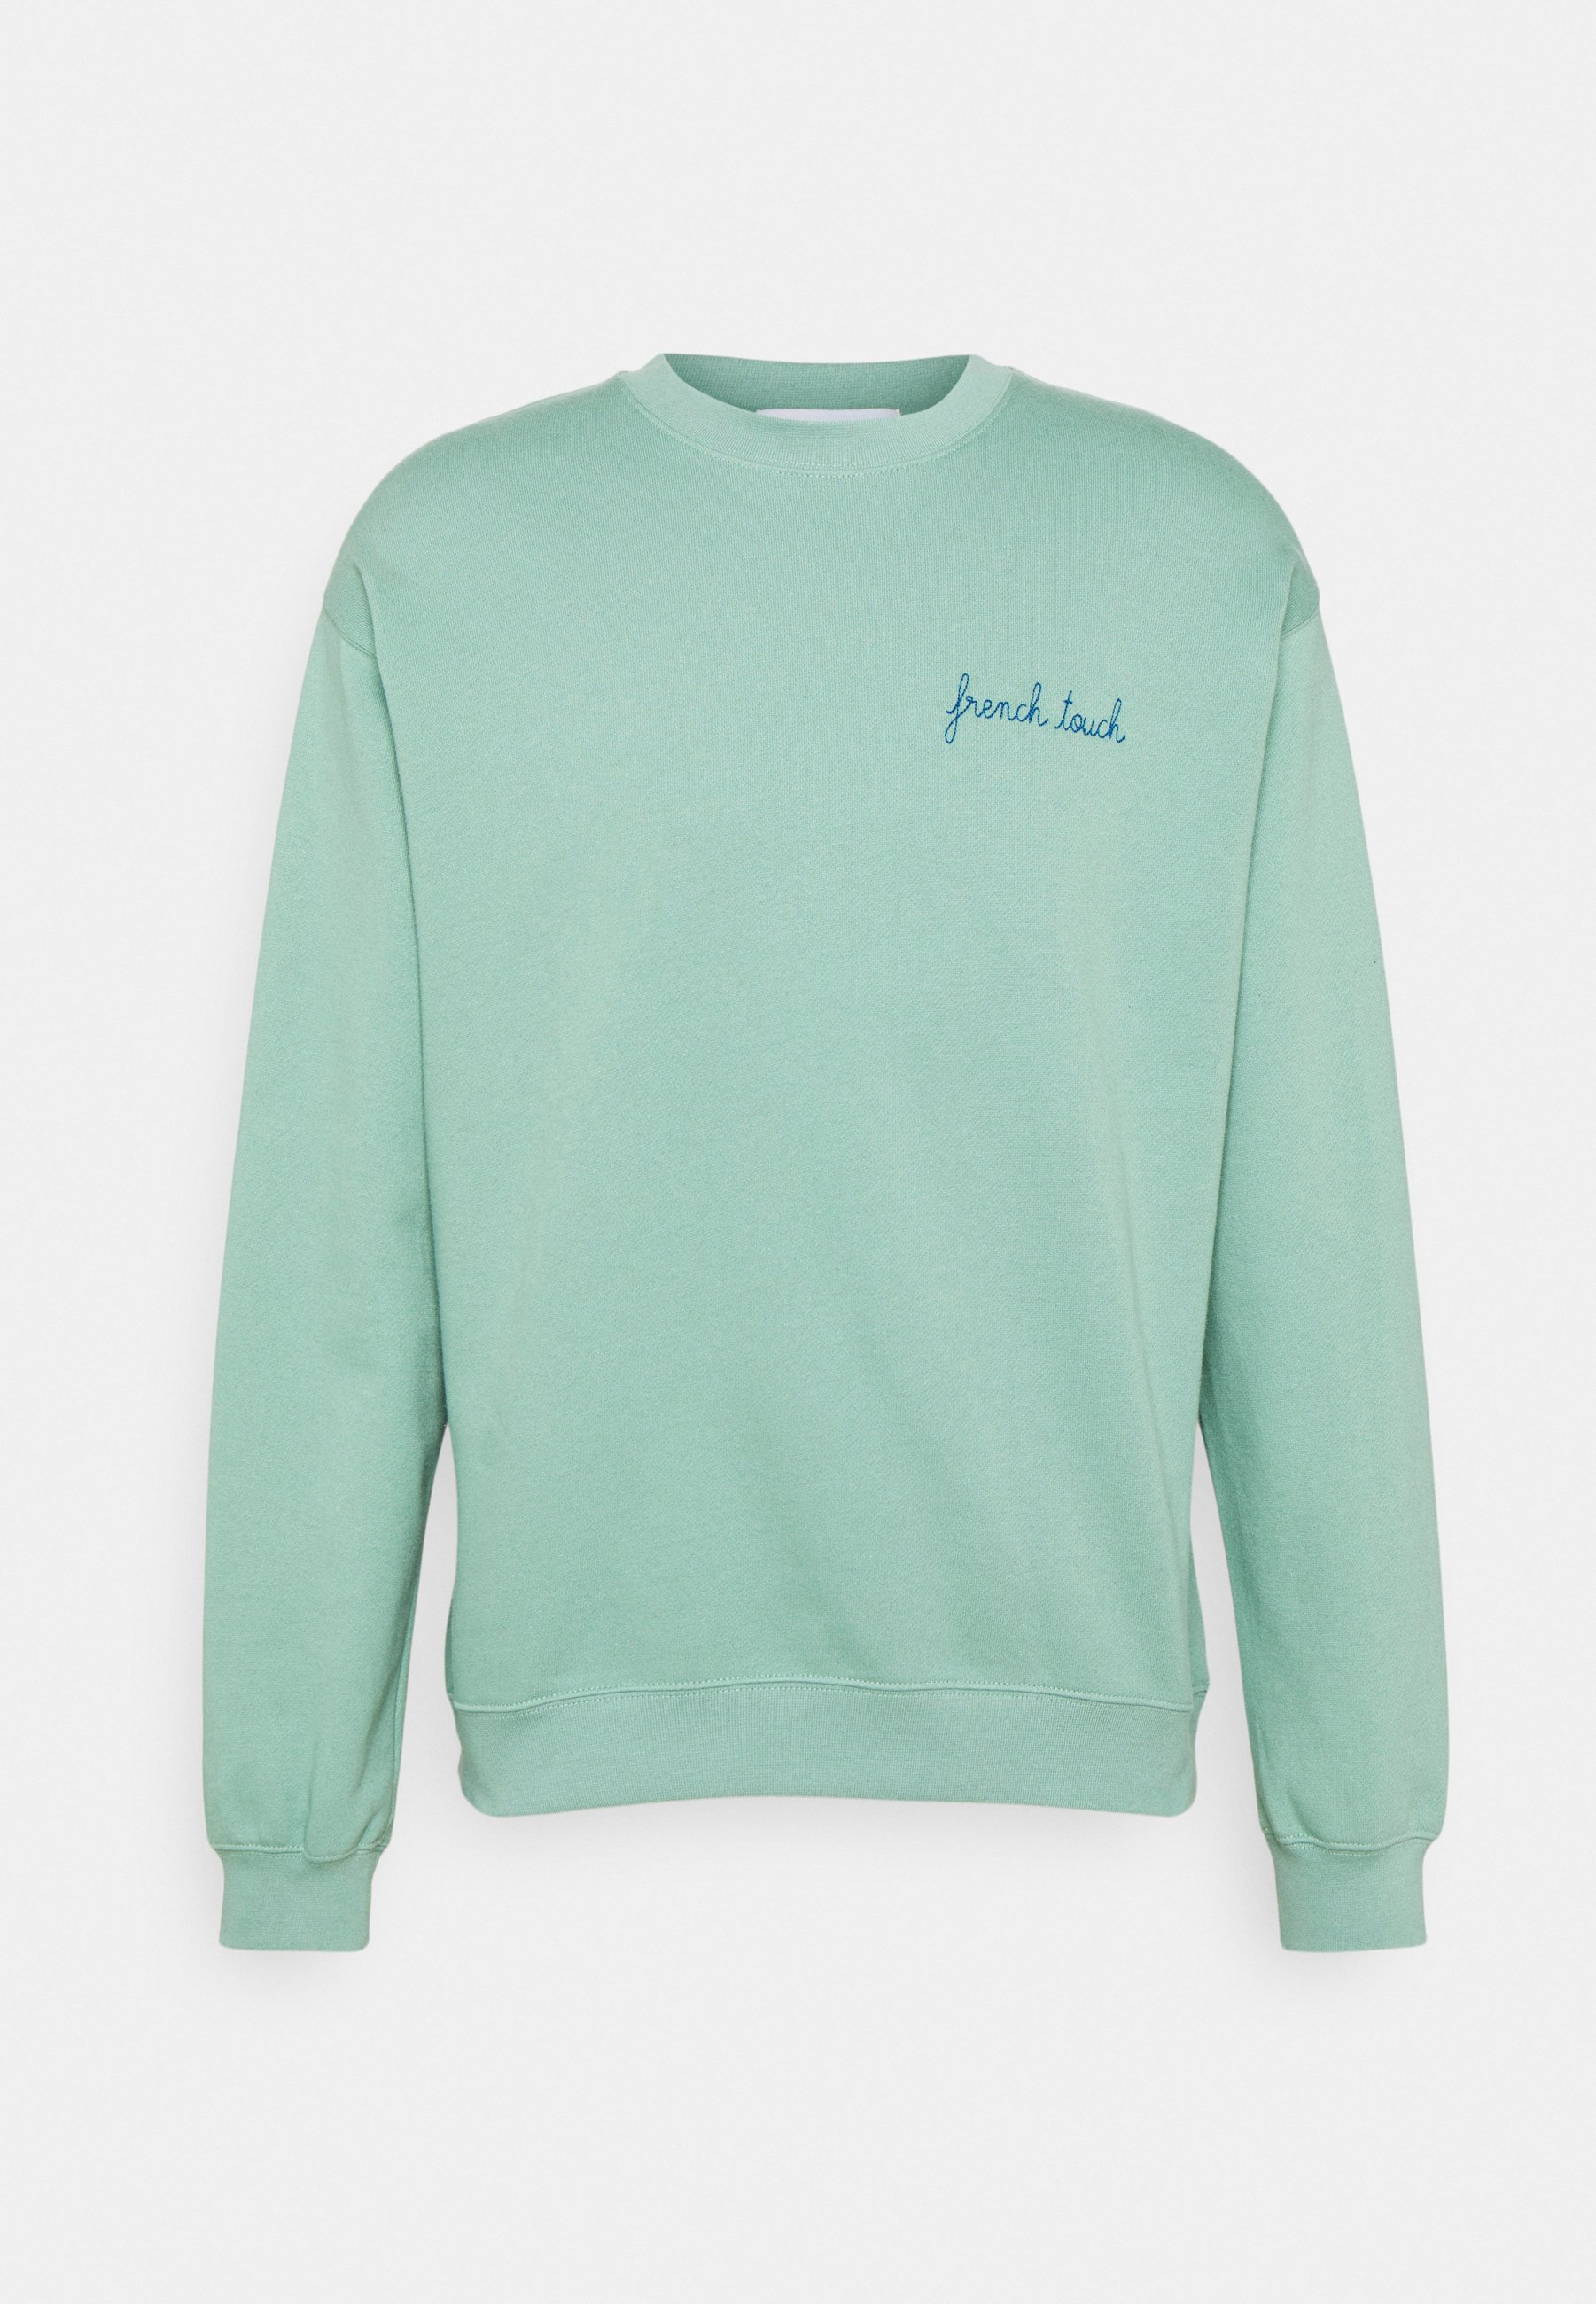 Homme FRENCH TOUCH  - Sweatshirt